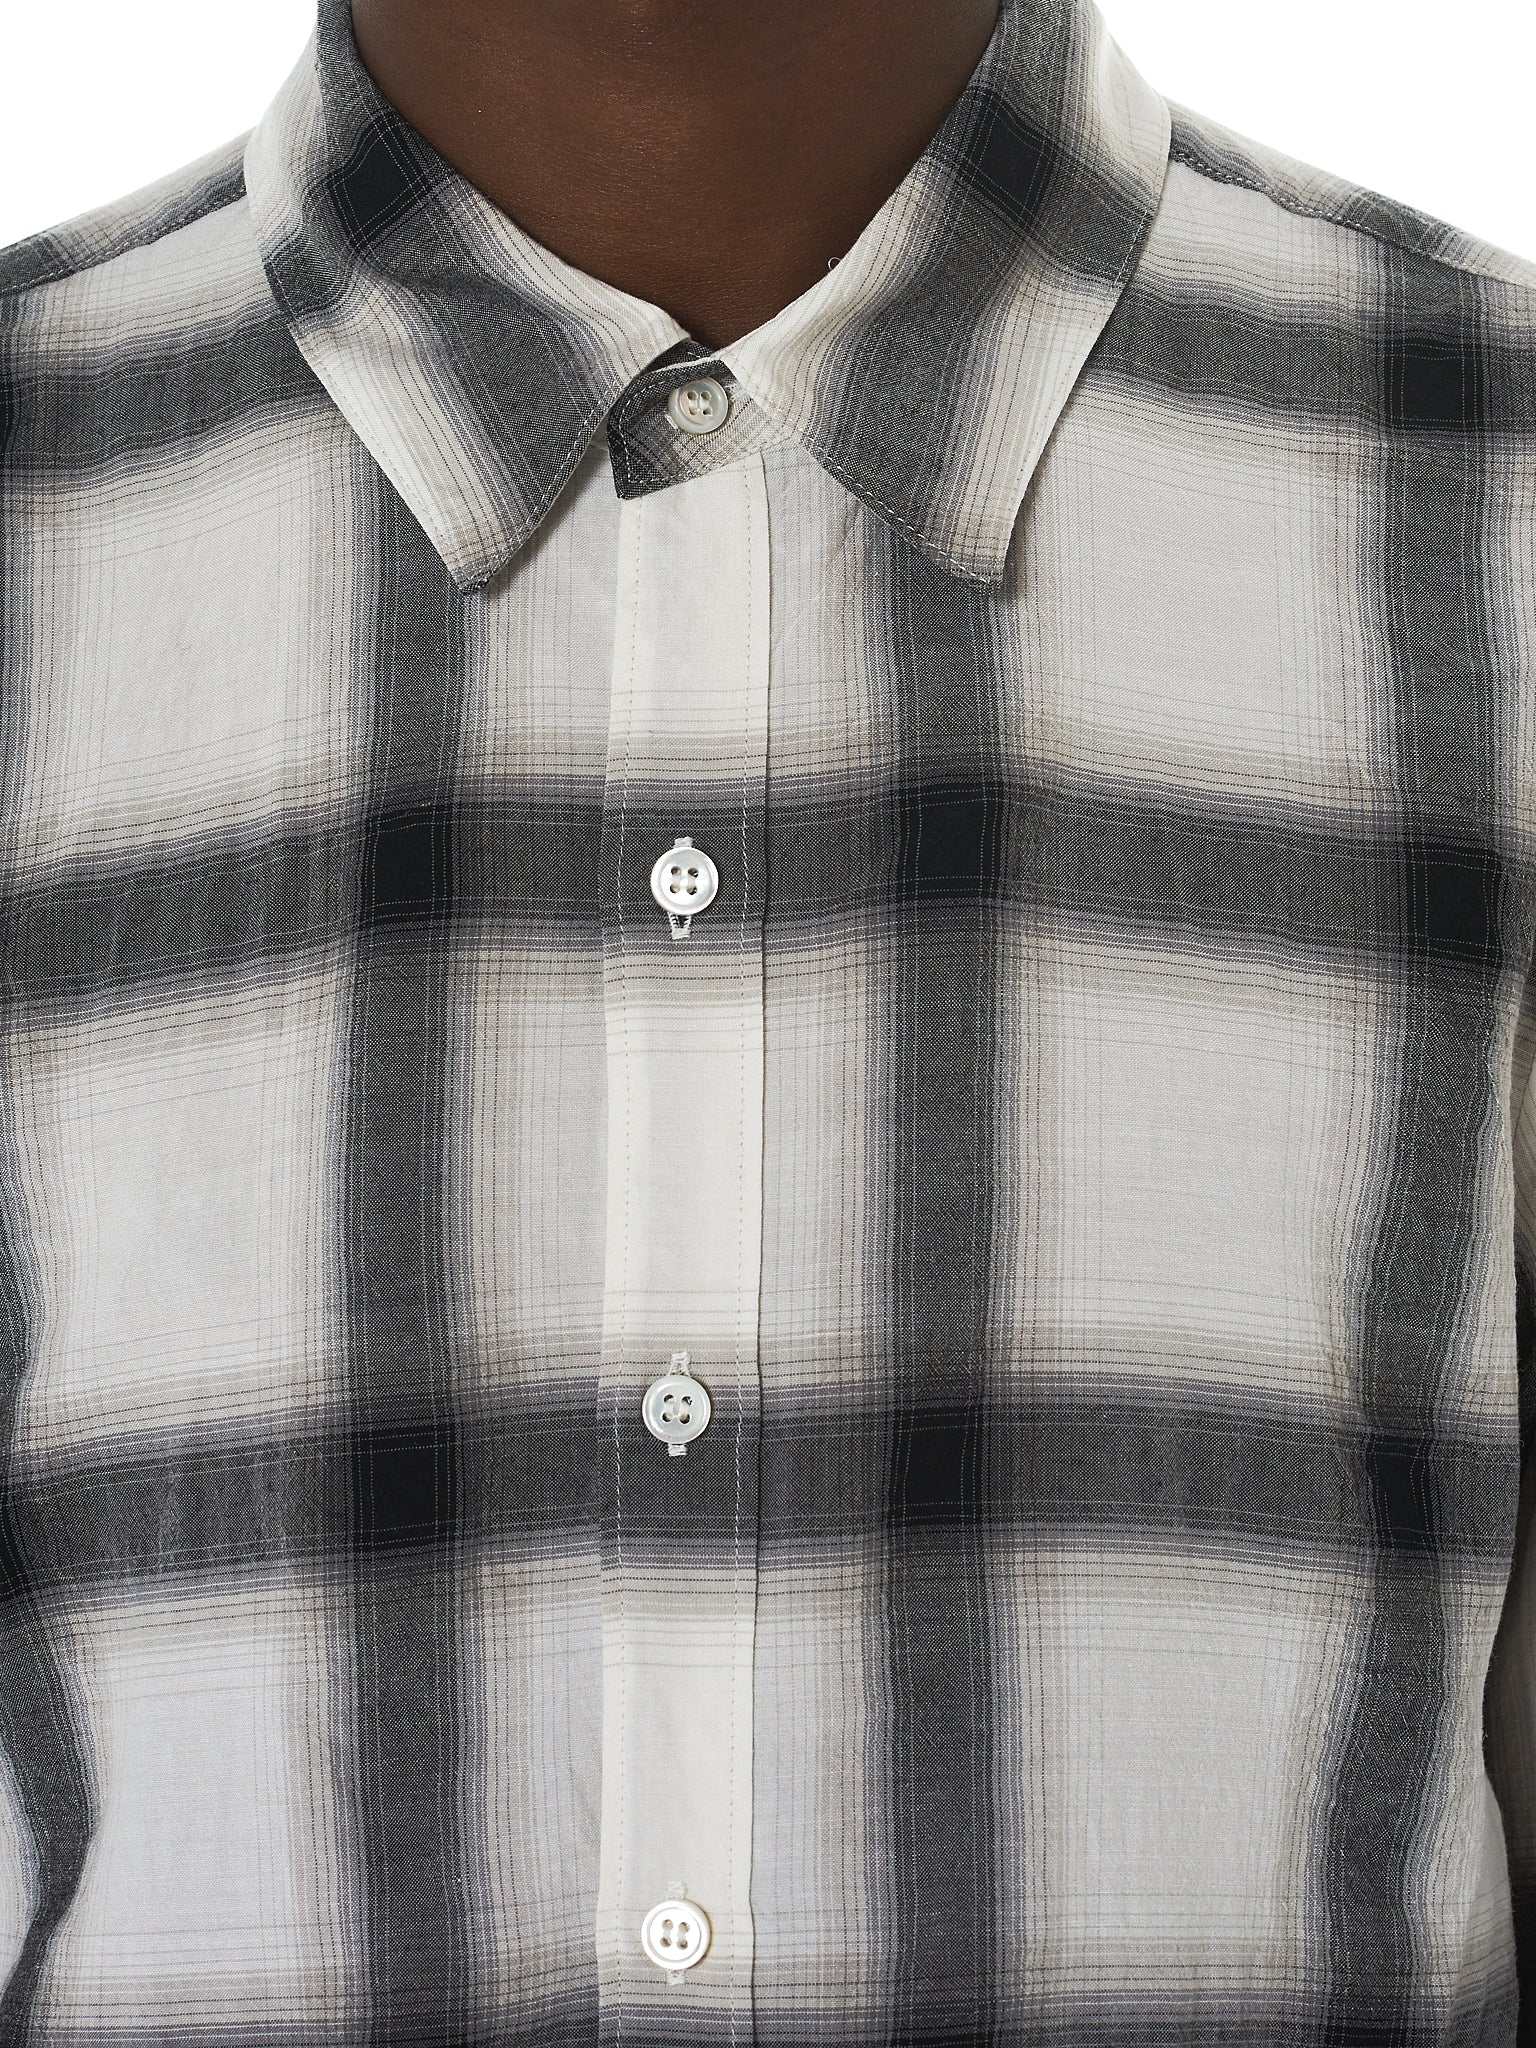 Attachment Kazuyuki Kumagai Plaid Shirt - Hlorenzo Detail 2